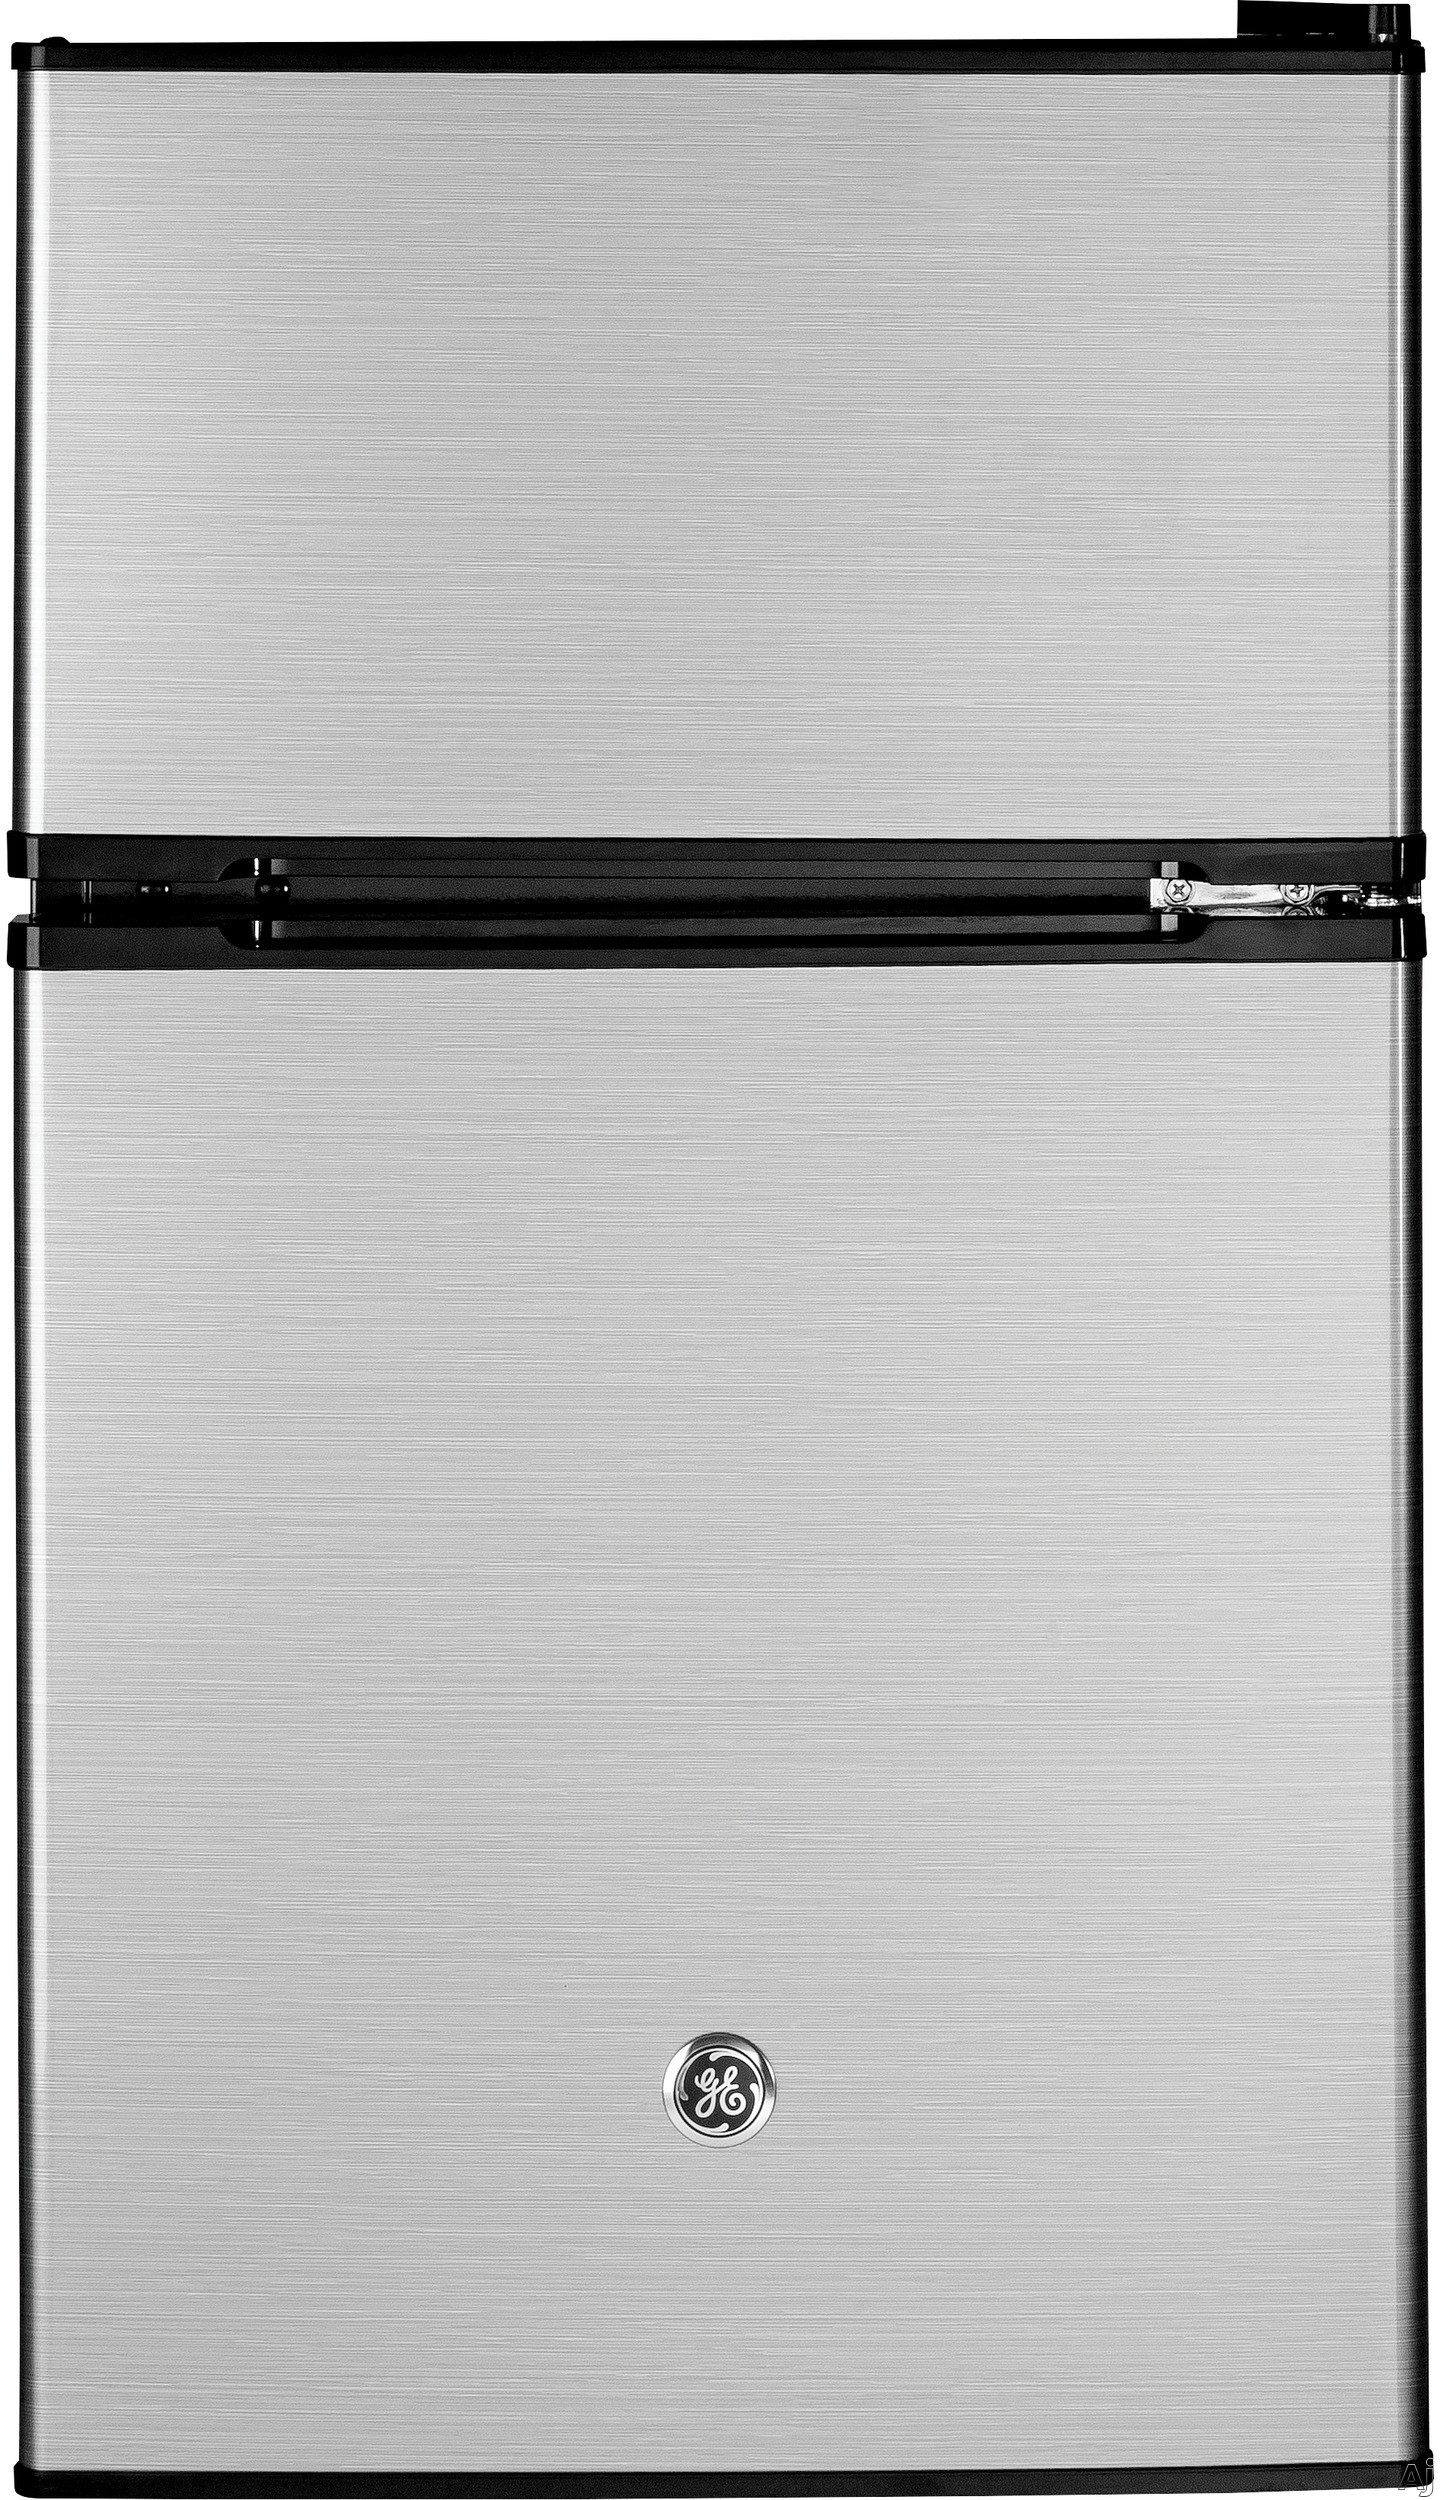 GE GDE03GK 19 Inch Top Freezer Compact Refrigerator with 2 Glass Shelves, Storage Drawer, 2 Door Bins, Beverage Can Door Bin, Freezer Door Bin, ENERGY STAR and Mini Ice Cube Tray